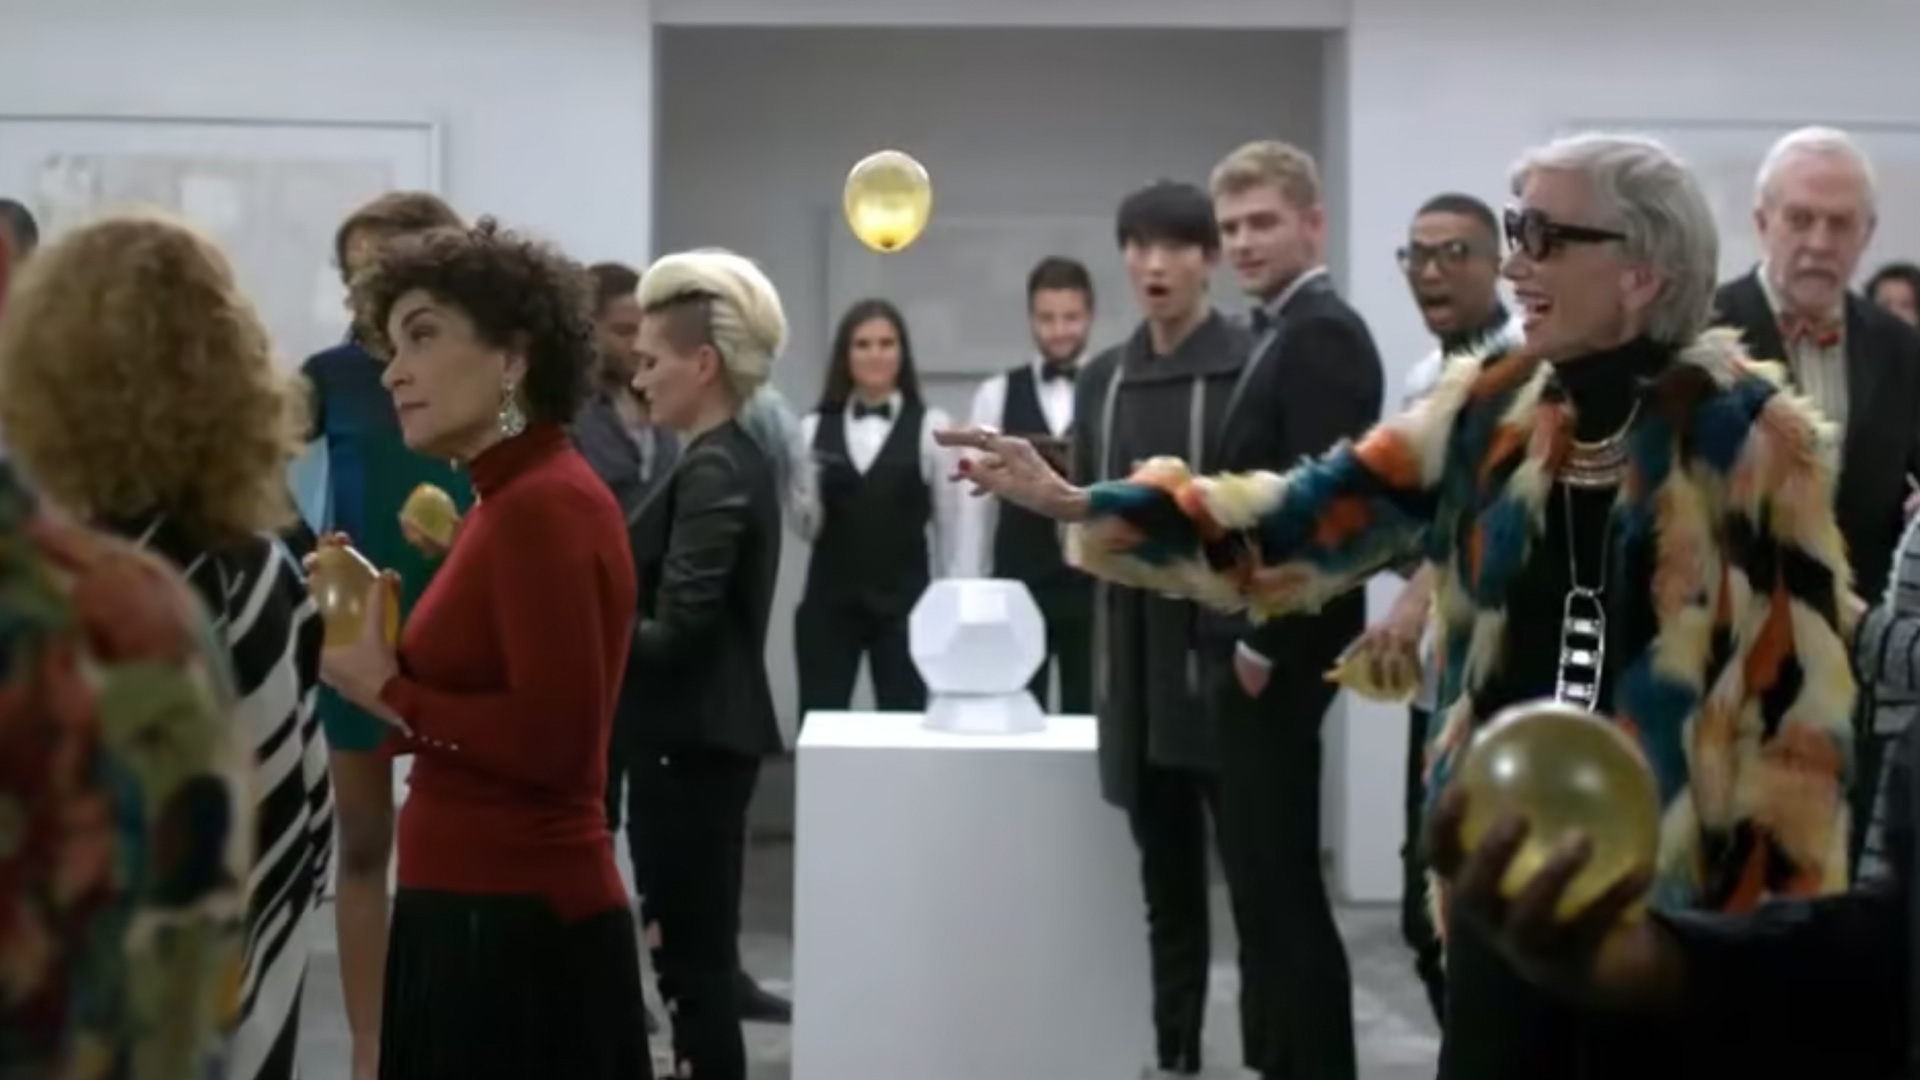 People at a gallery event with a woman holding a yellow balloon